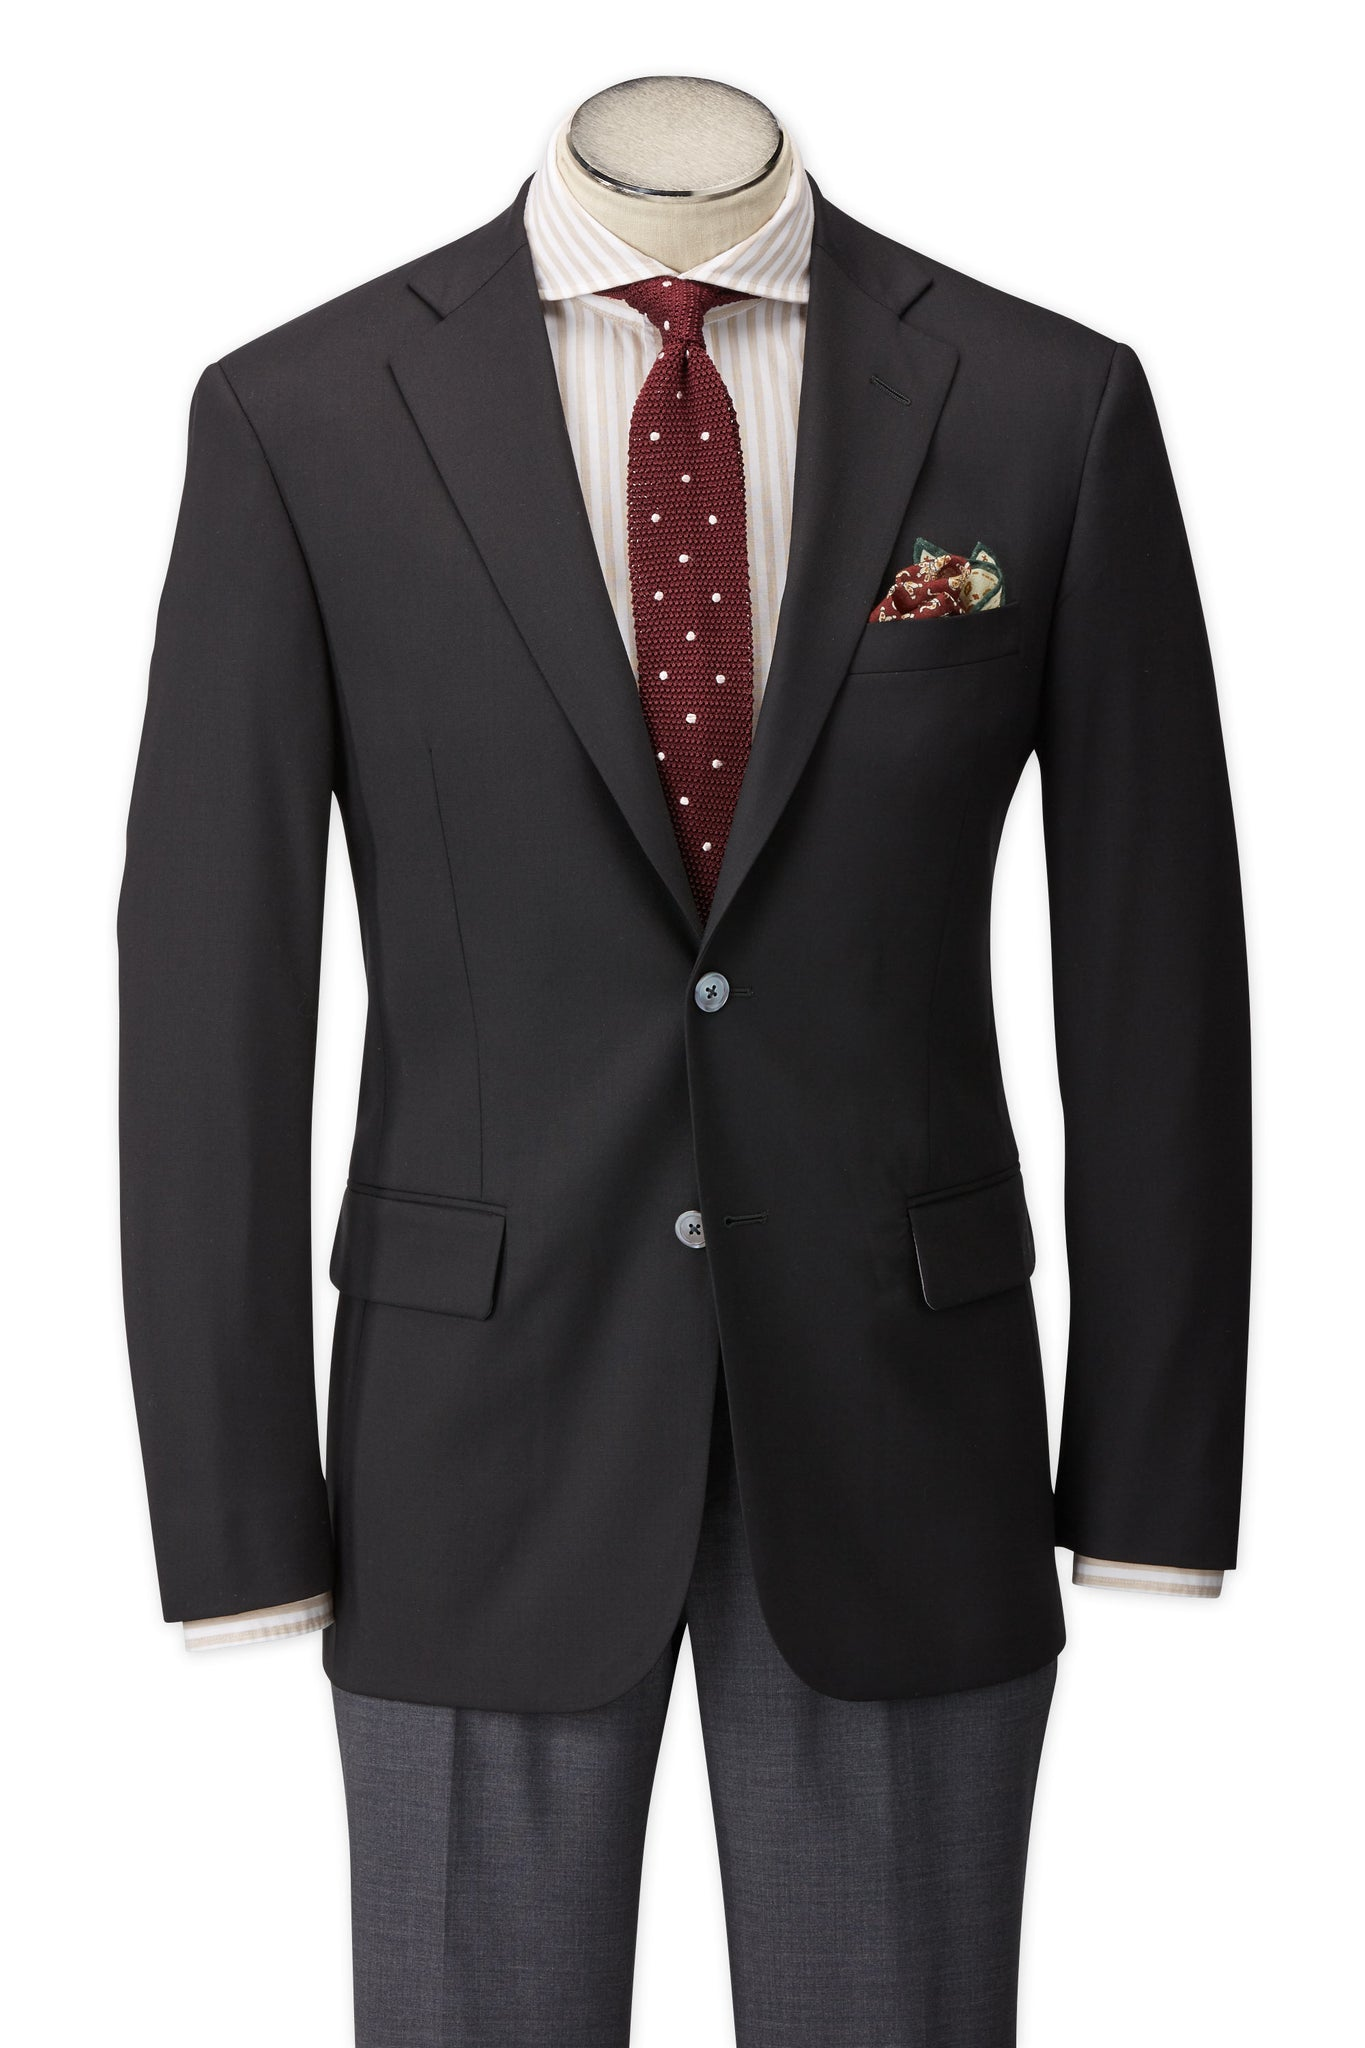 Modern Fit Black H-Tech Super 110's Wrinkle Resistant Wool Blazer -  Hardwick.com